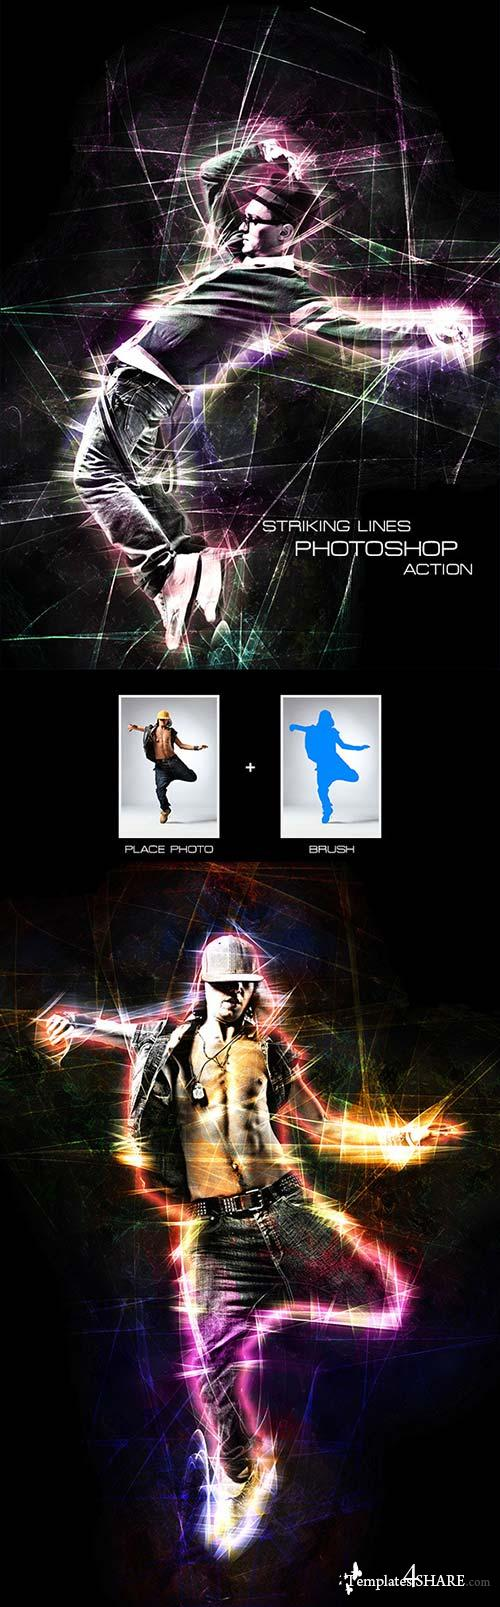 GraphicRiver Striking Lines - Photoshop Action